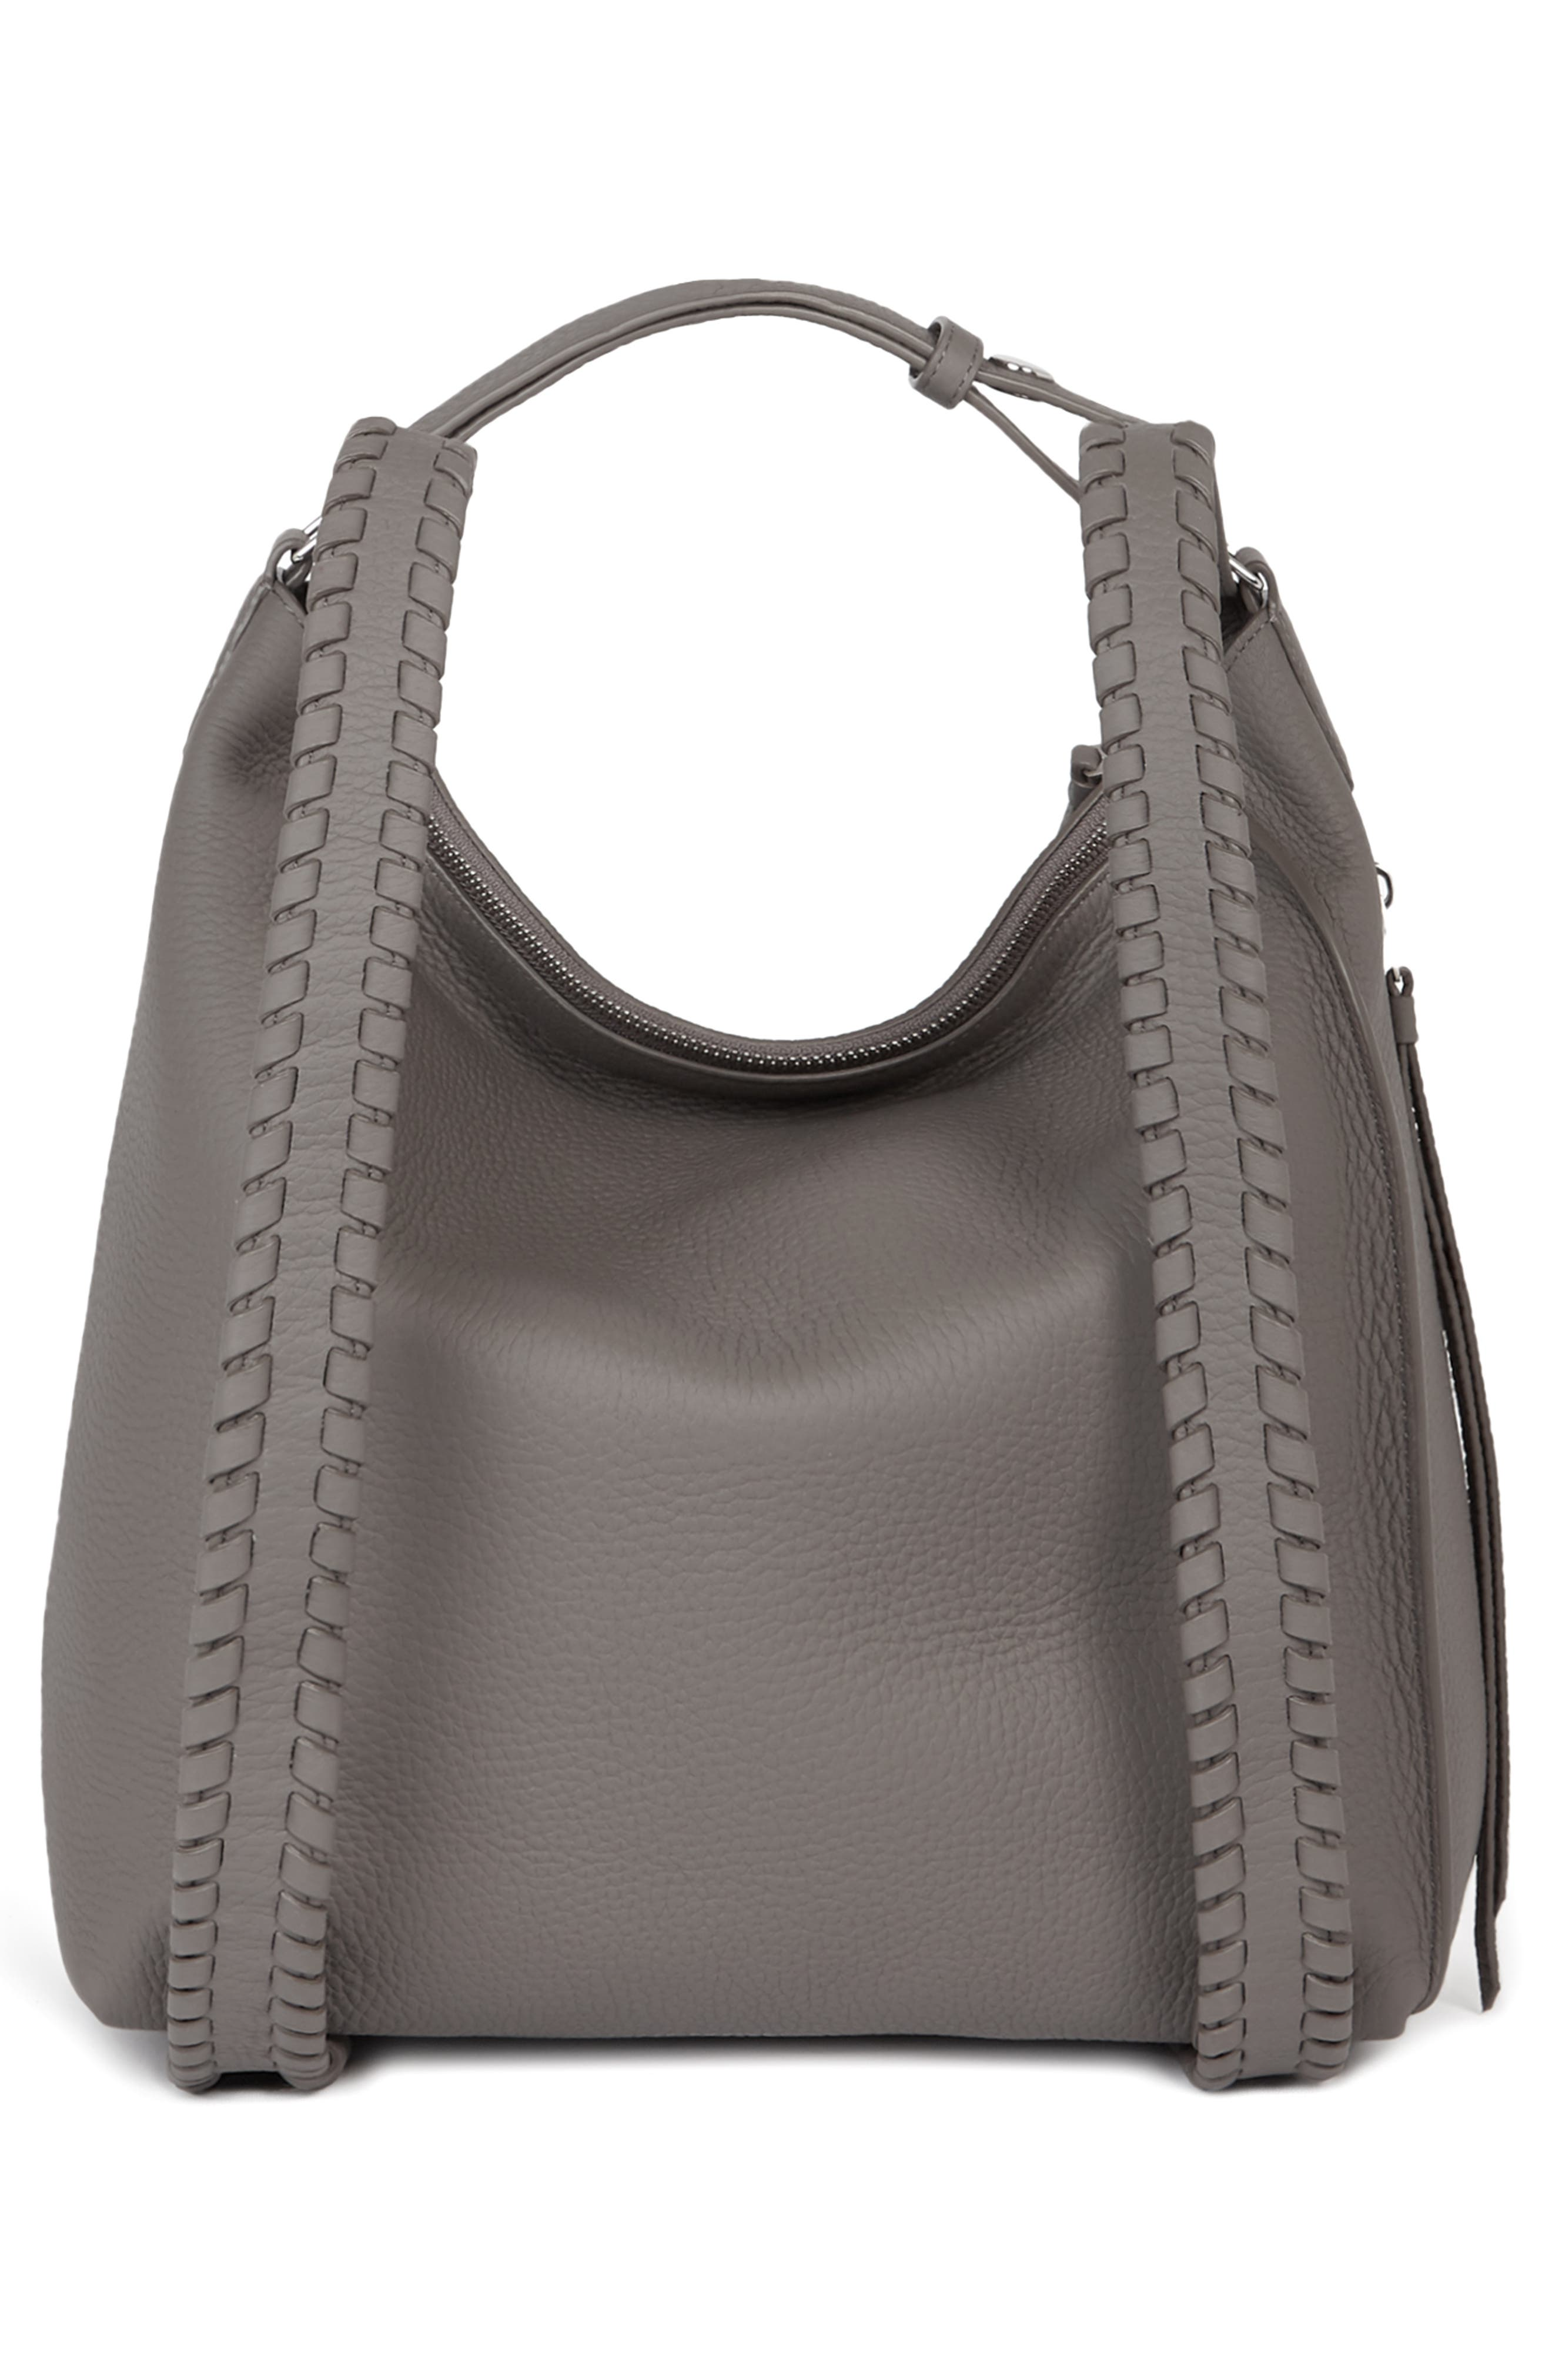 ALLSAINTS,                             Small Kita Convertible Leather Backpack,                             Alternate thumbnail 2, color,                             STORM GREY